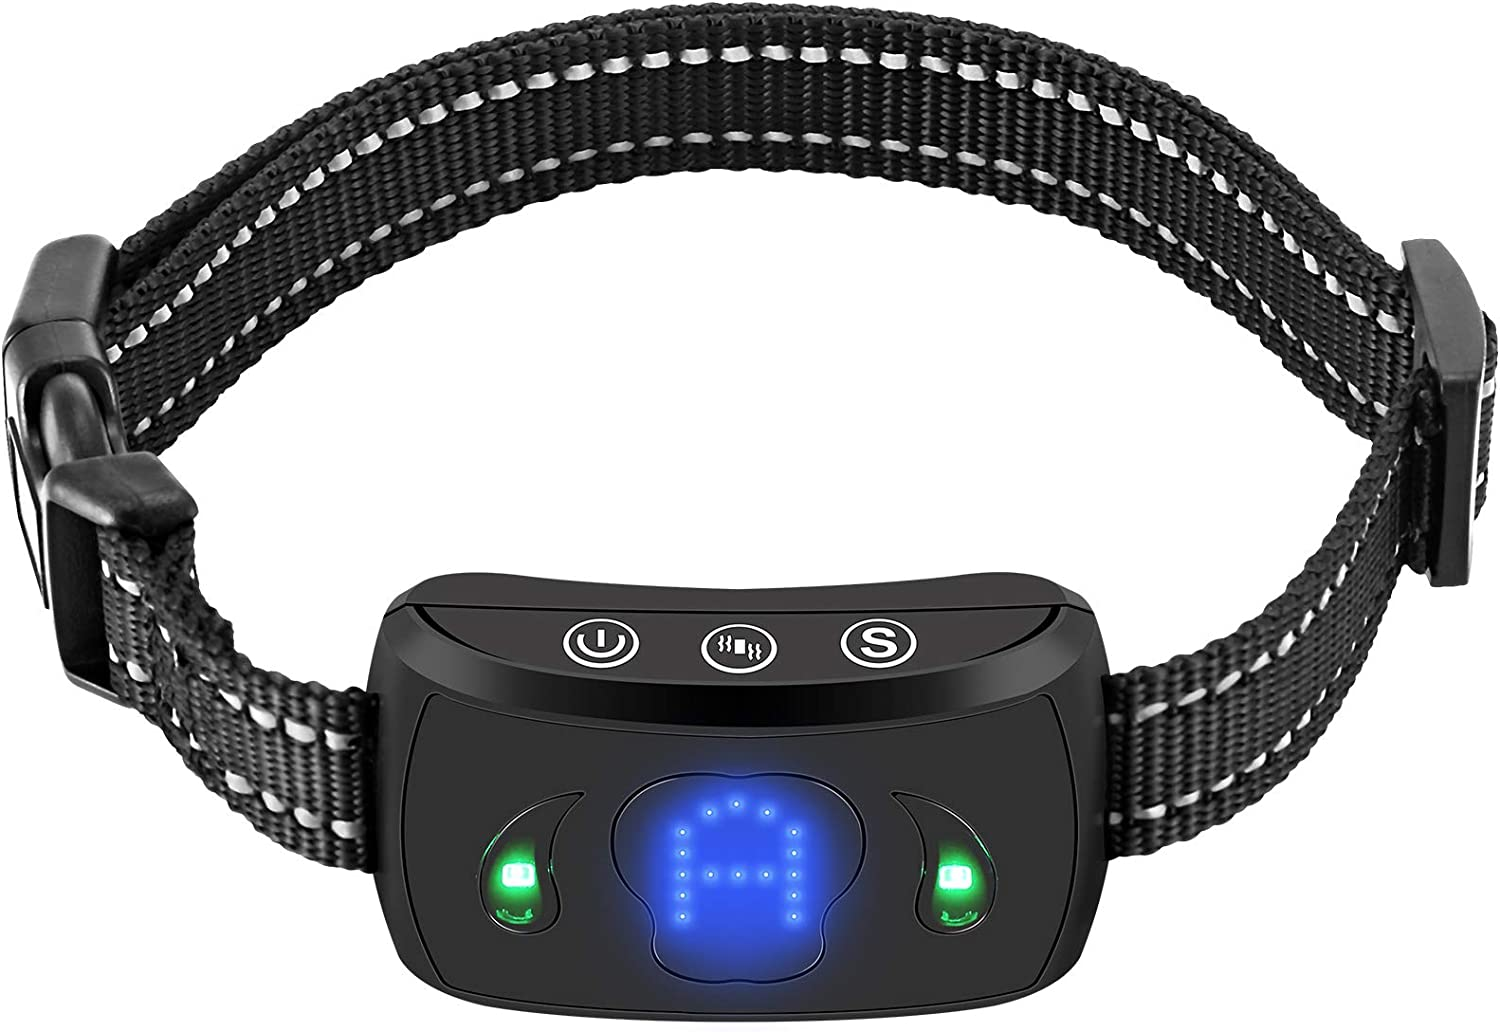 Beep Safe Humane Auto Bark Correction Rechargeable Shock Collar for Dogs in Small Medium and Large Sizes Shock Modes Vibration Dog Bark Collar No Barking Collar with 5 Adjustable Sensitivity